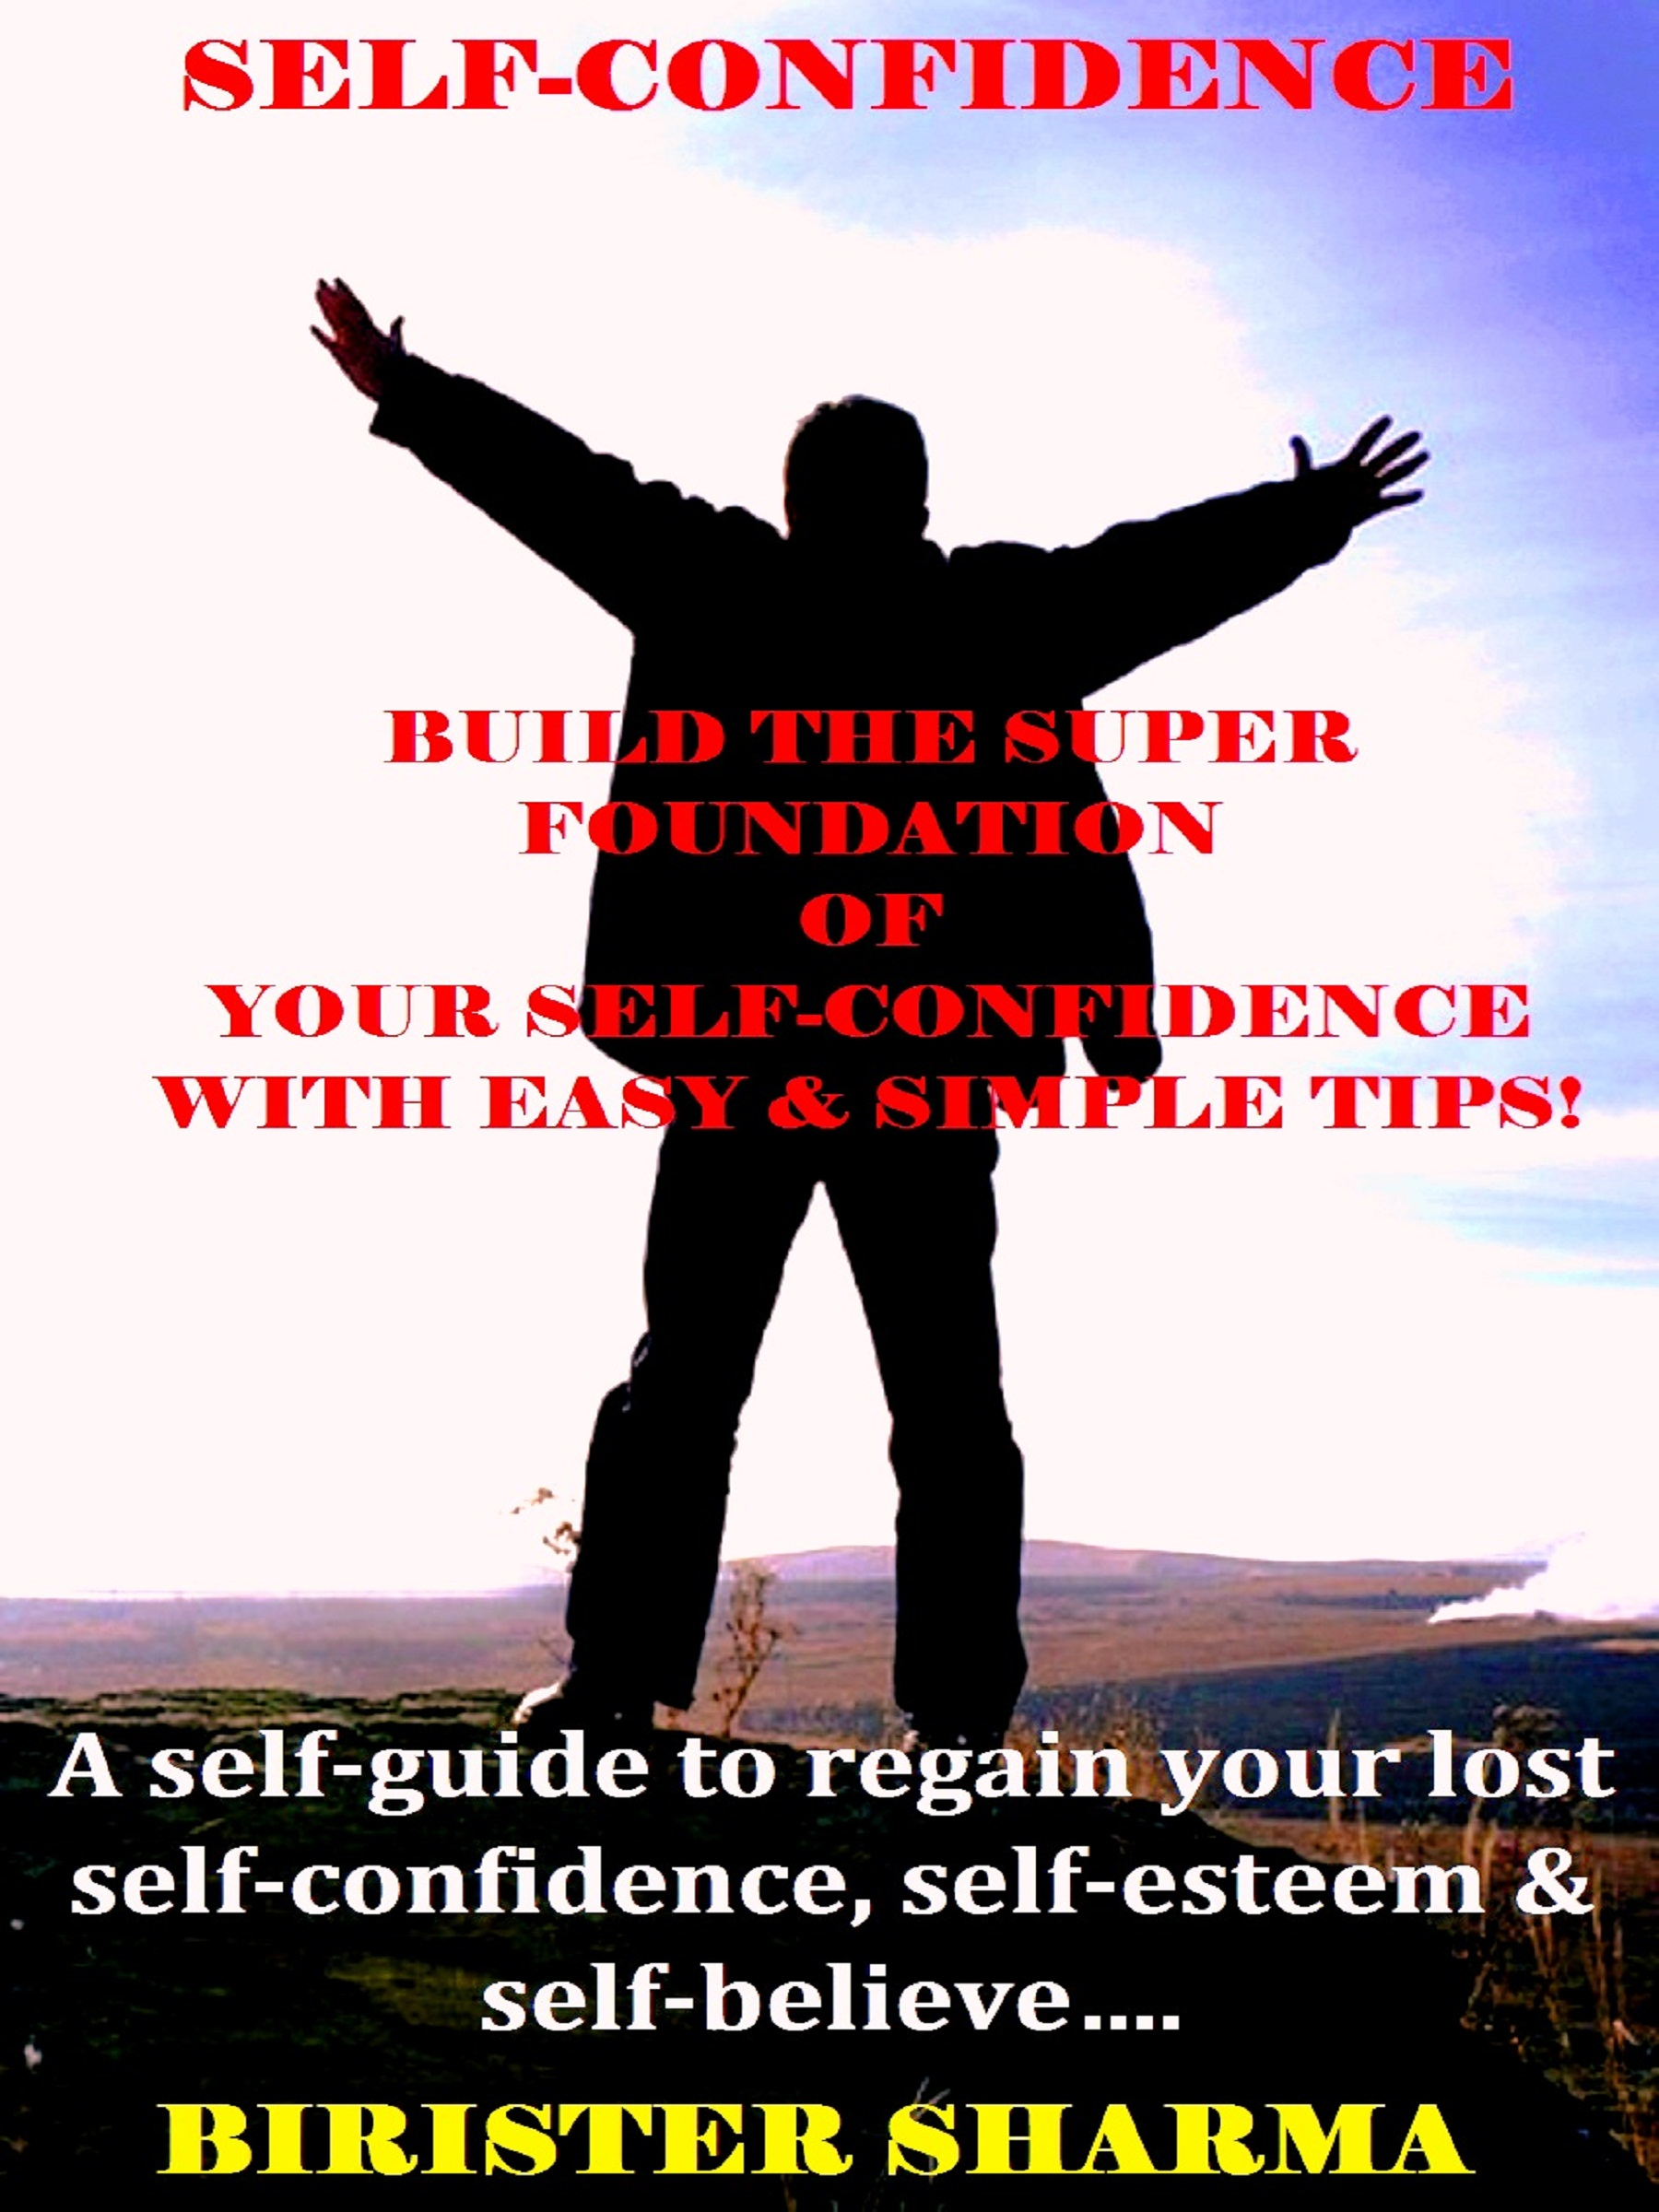 Smashwords self confidence build the super foundation of your readers sciox Gallery